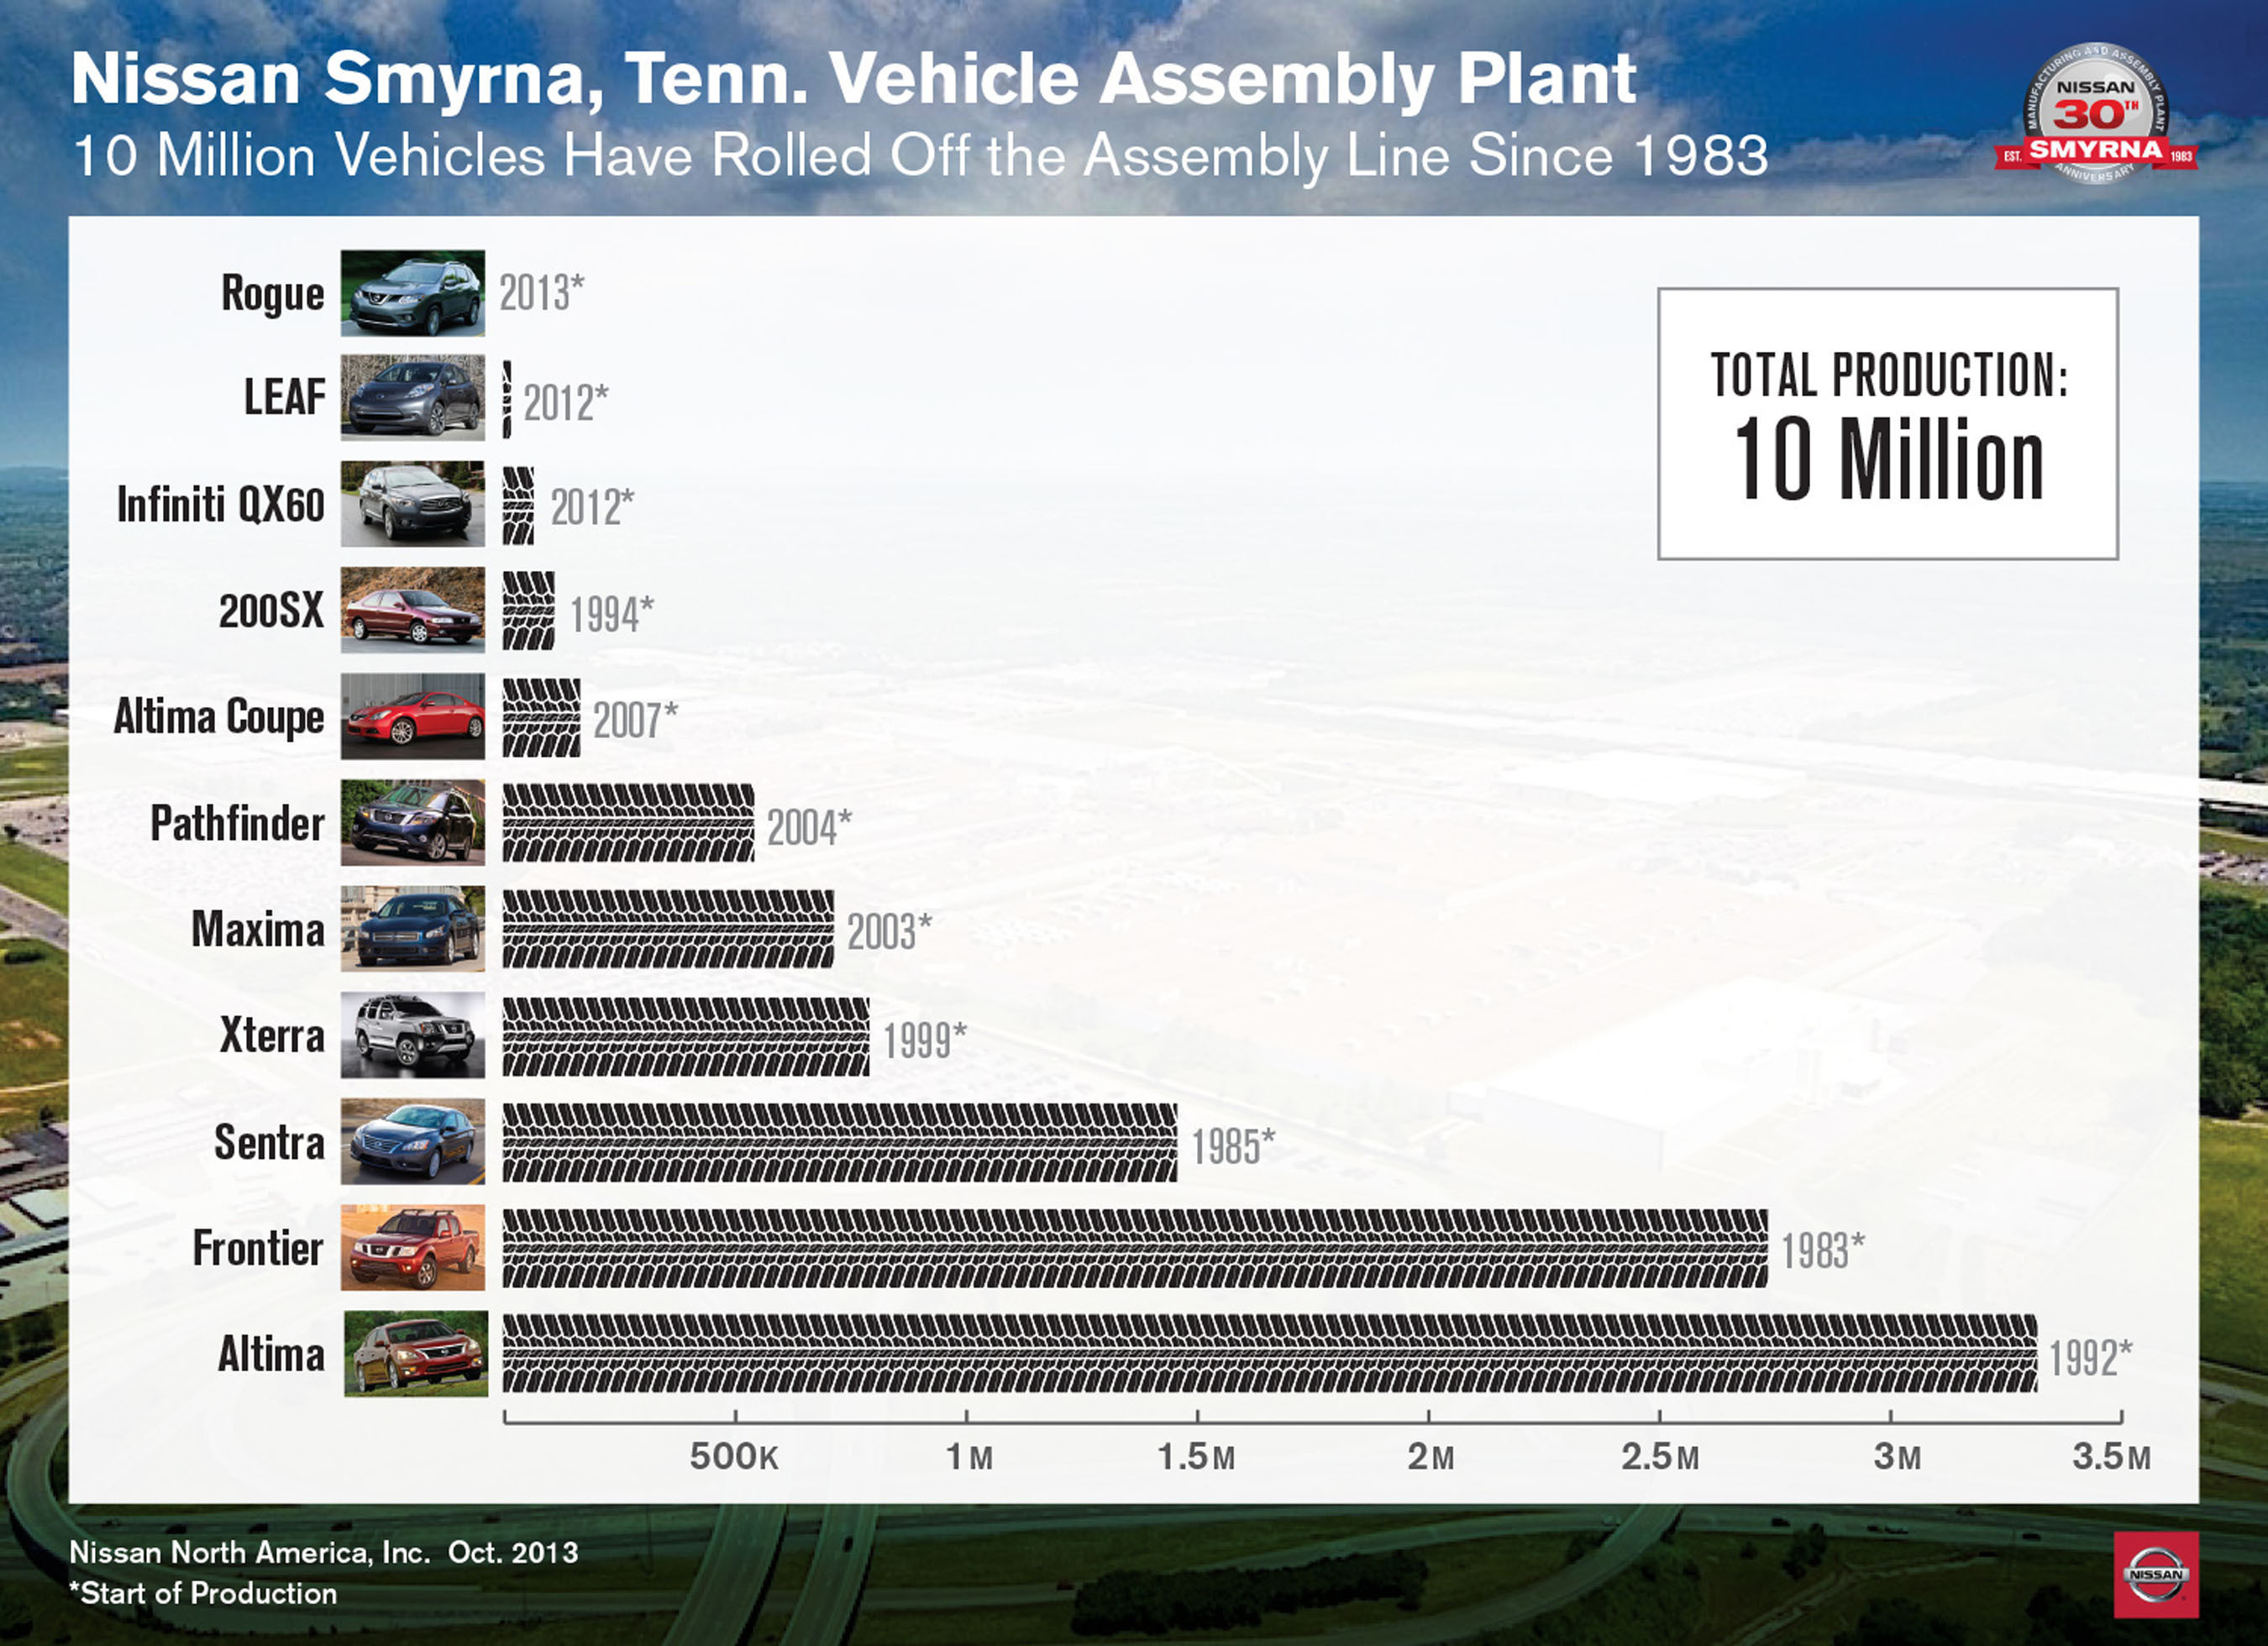 Nissan Smyrna, Tenn. Vehicle Assembly Plant - 10 Million Vehicles Have Rolled Off the Assembly Line Since 1983.  ...